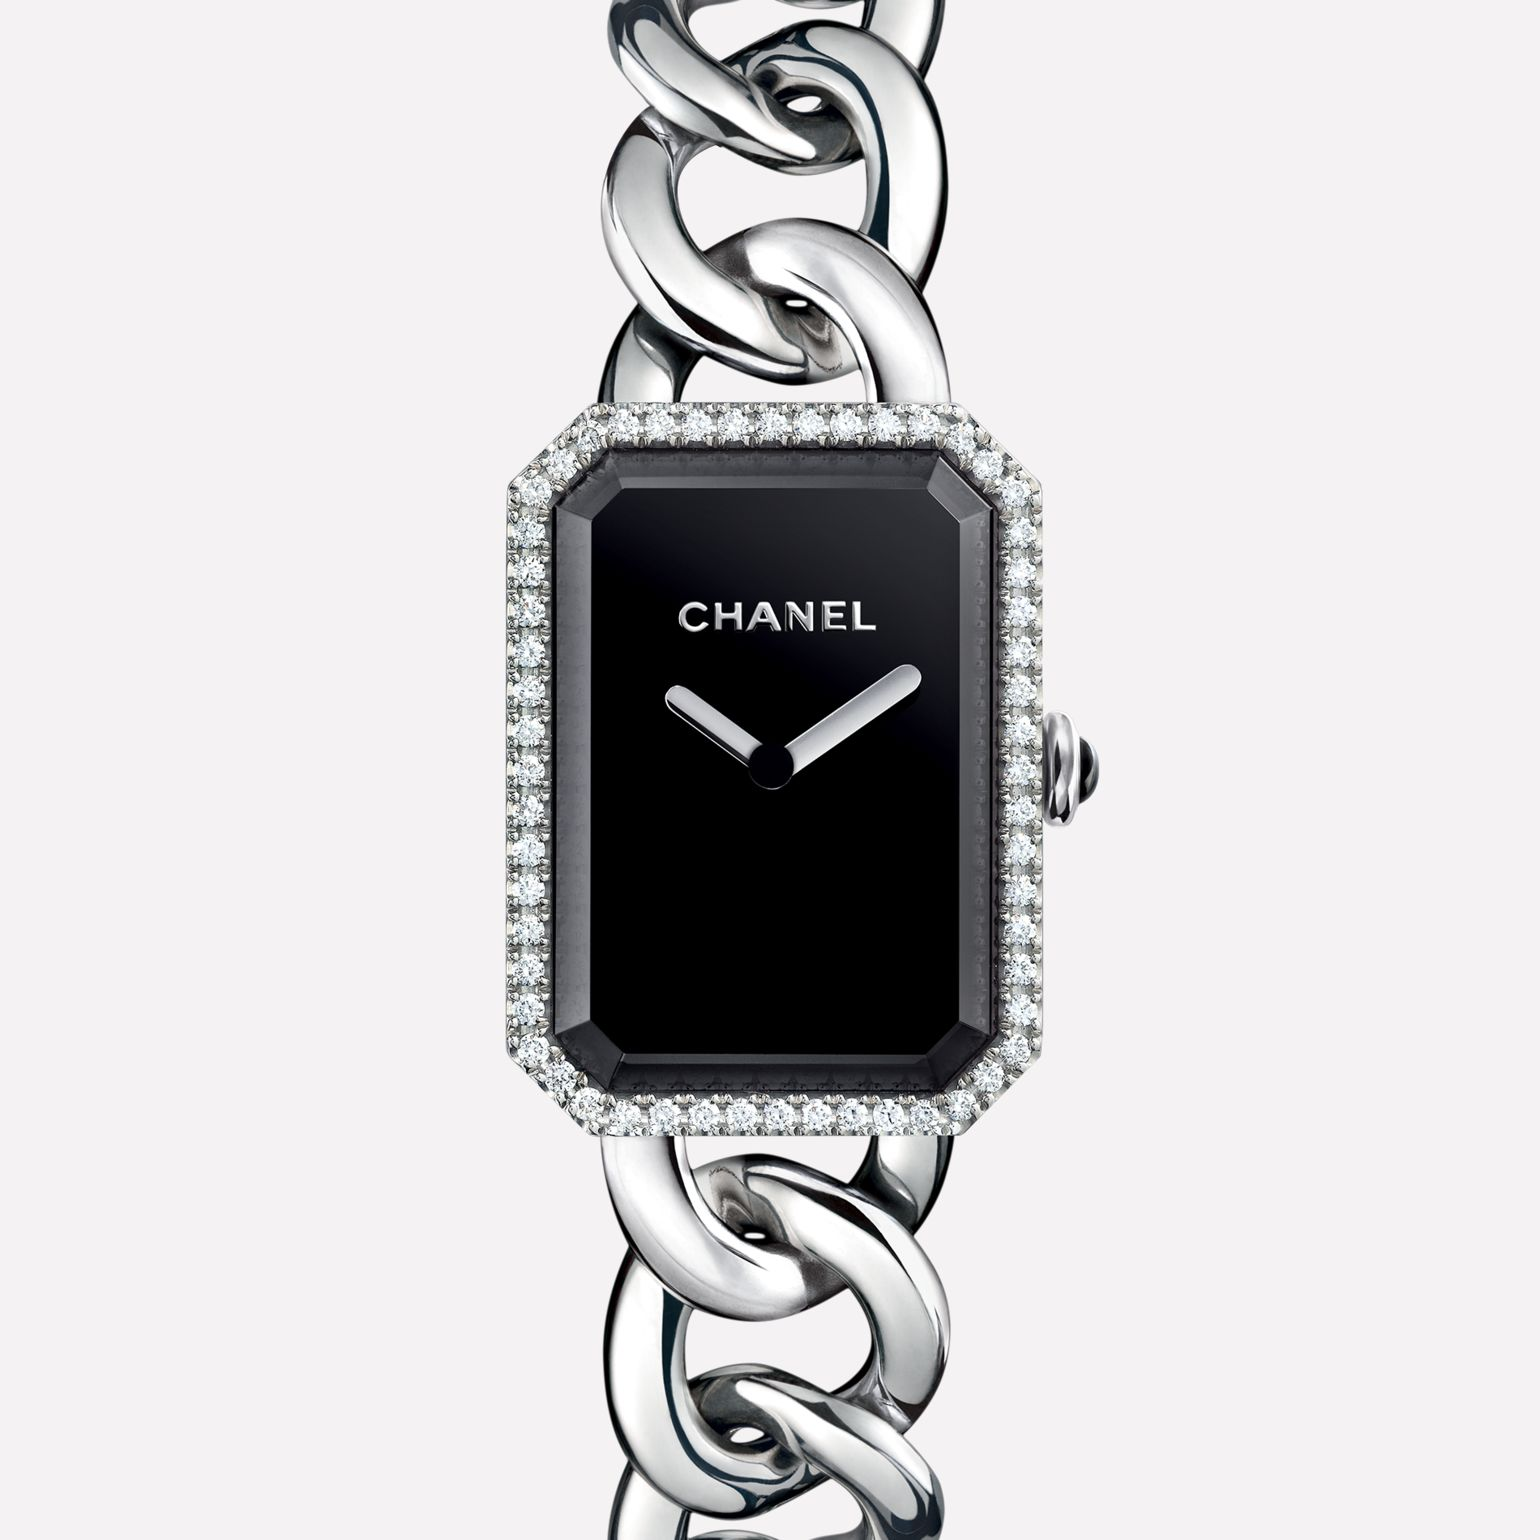 Première Chaîne Large version, steel and diamonds, black dial